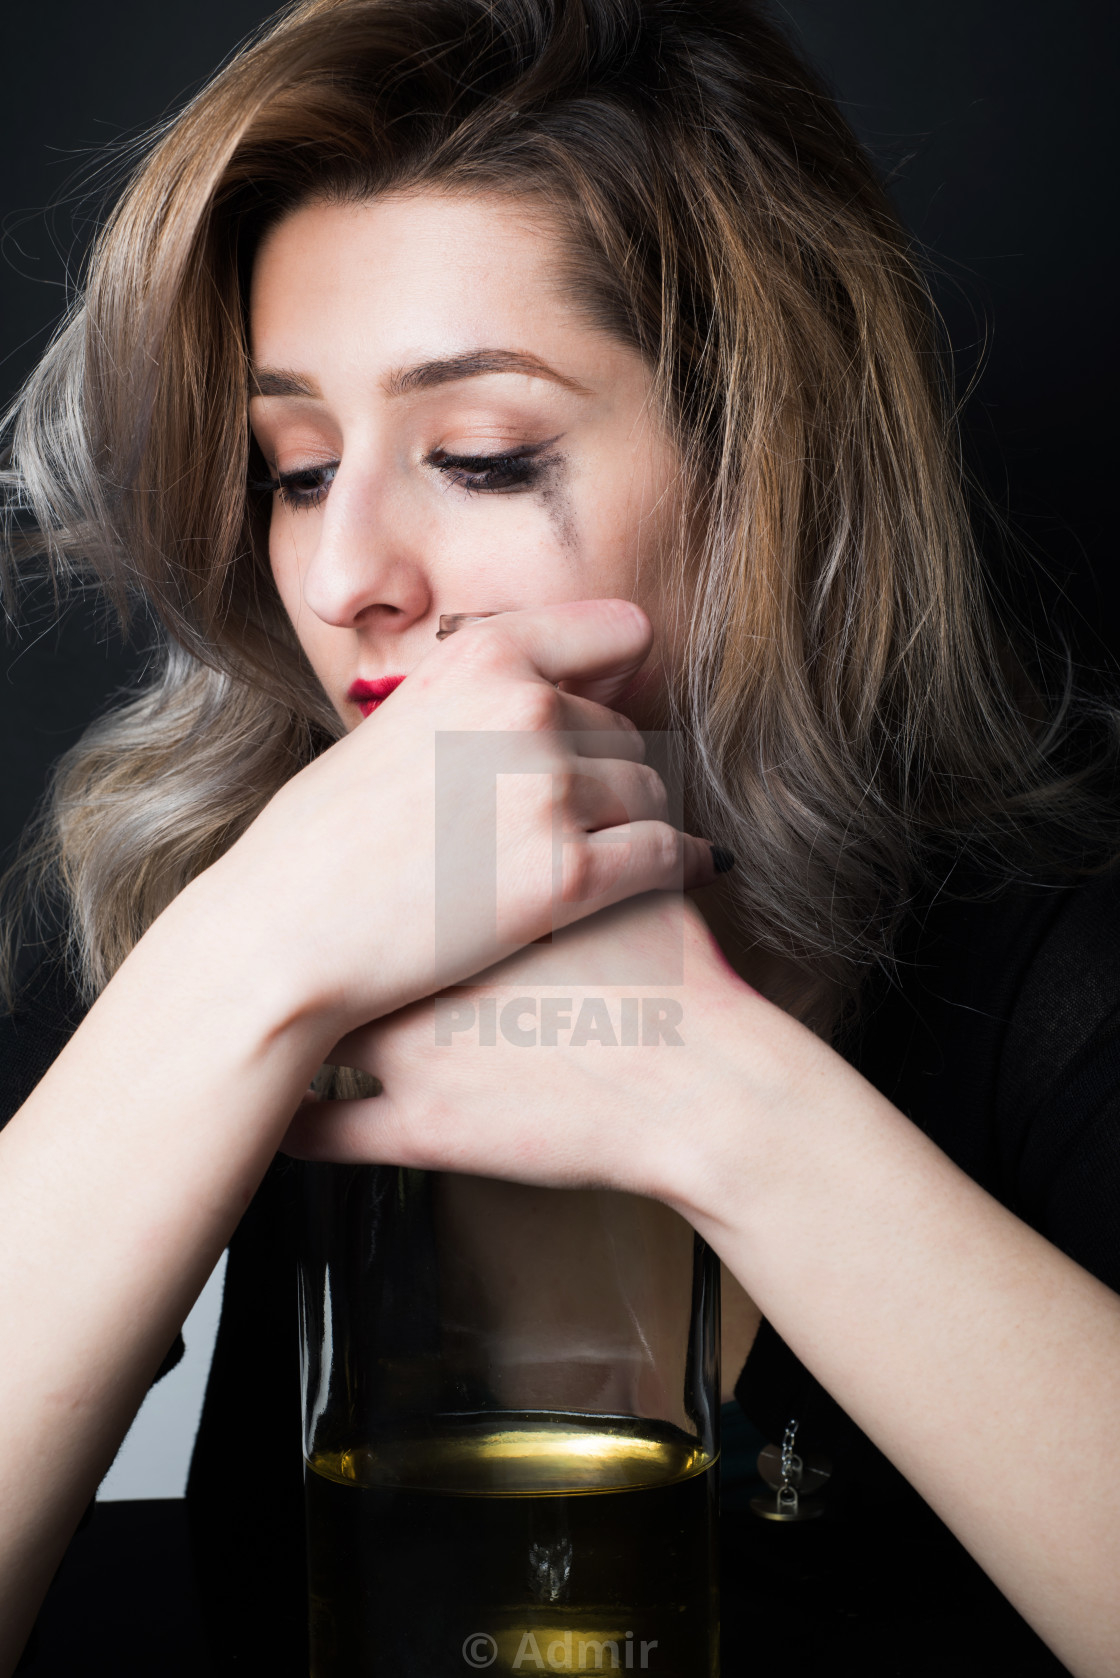 """young desperet woman with bottle of alcohol in hands"" stock image"